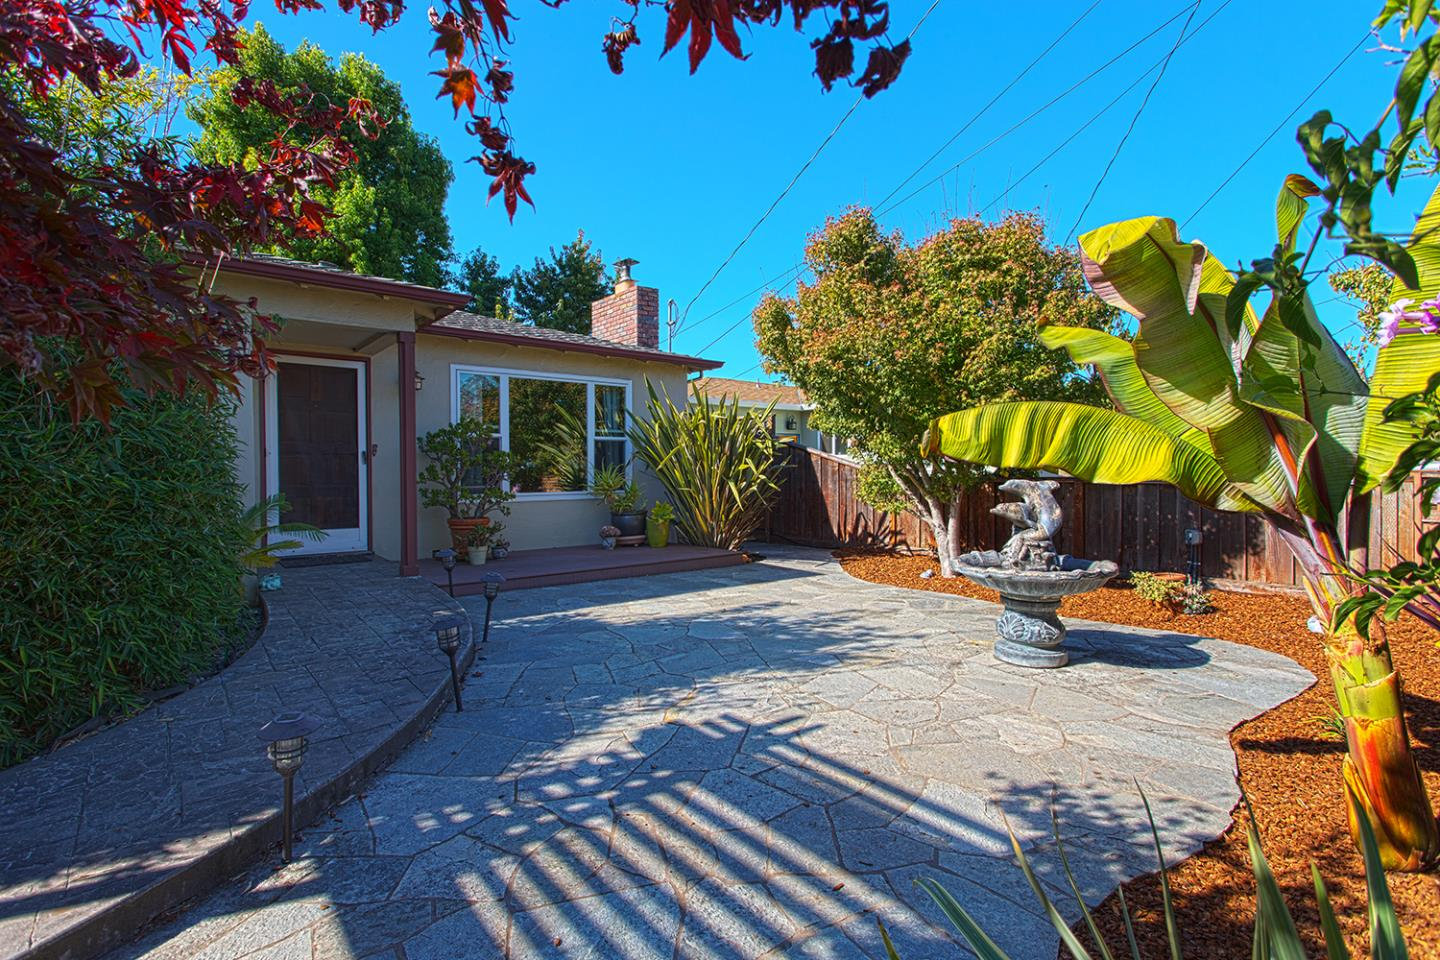 This adorable, single-level bungalow sits on a private street just minutes to the beaches, ocean, yacht harbor & amazing culture that Santa Cruz has to offer.  Situated on a massive 7500+ sq.ft. professionally manicured lot, with paved patios, private decks, outside Tiki Cabana/Studio/Workshop overlooking a beautiful, outdoor fireplace, this property is truly special offering privacy, space and nature.   Features also include gleaming hardwood floors throughout, a completely remodeled kitchen with granite countertops, top of the line appliances, spacious, open floor-plan, & radiant heat is also installed for your comfort in the remodeled, luxurious bathroom.   Upgraded plumbing & electrical.  Truly a beautiful home on a huge, private, beautiful lot in one of the best, coveted, central locations of Santa Cruz.